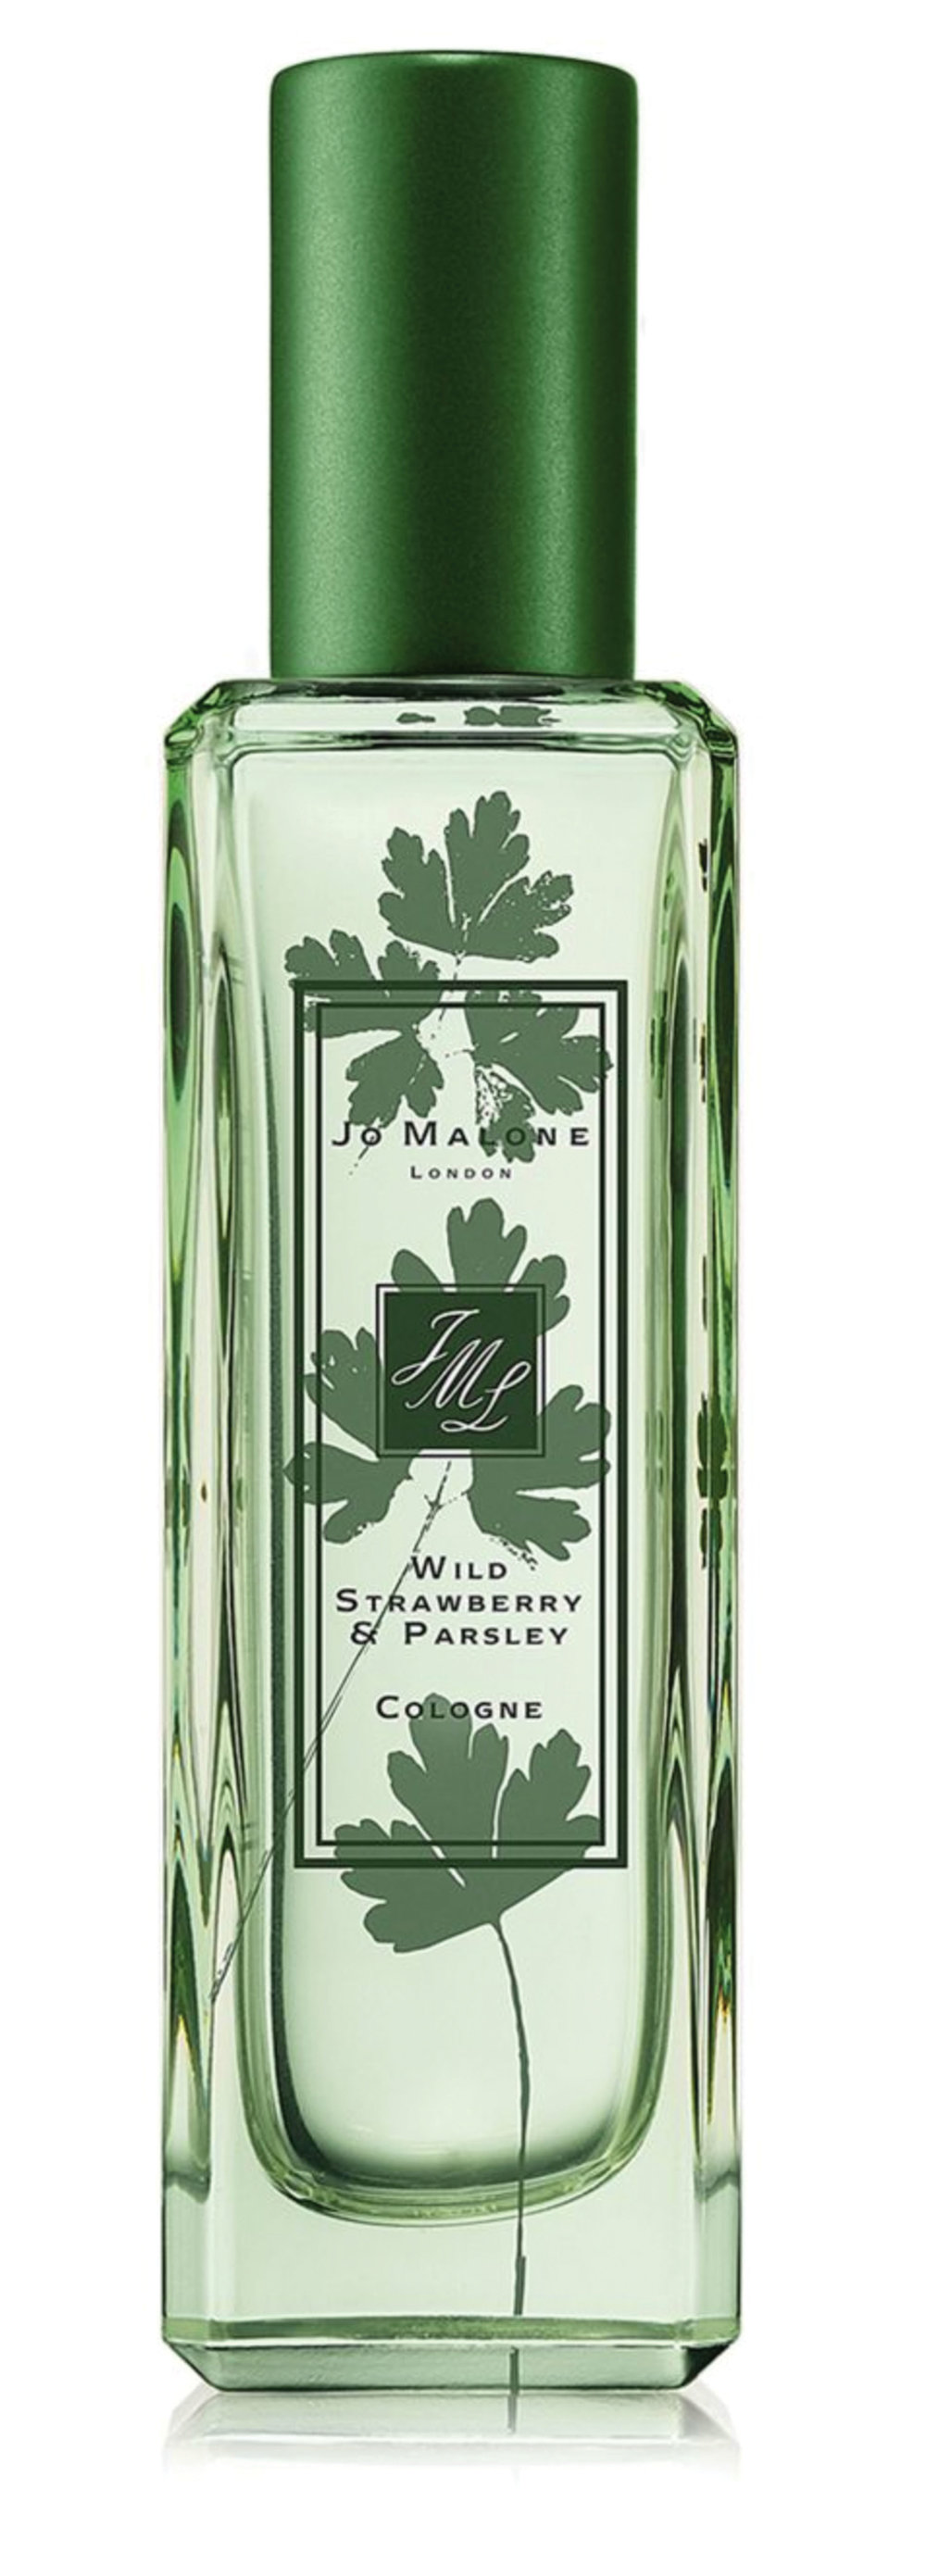 Wild Strawberry & Parsley Cologne 1 oz., by Jo Malone, $94,  shop.nordstrom.com